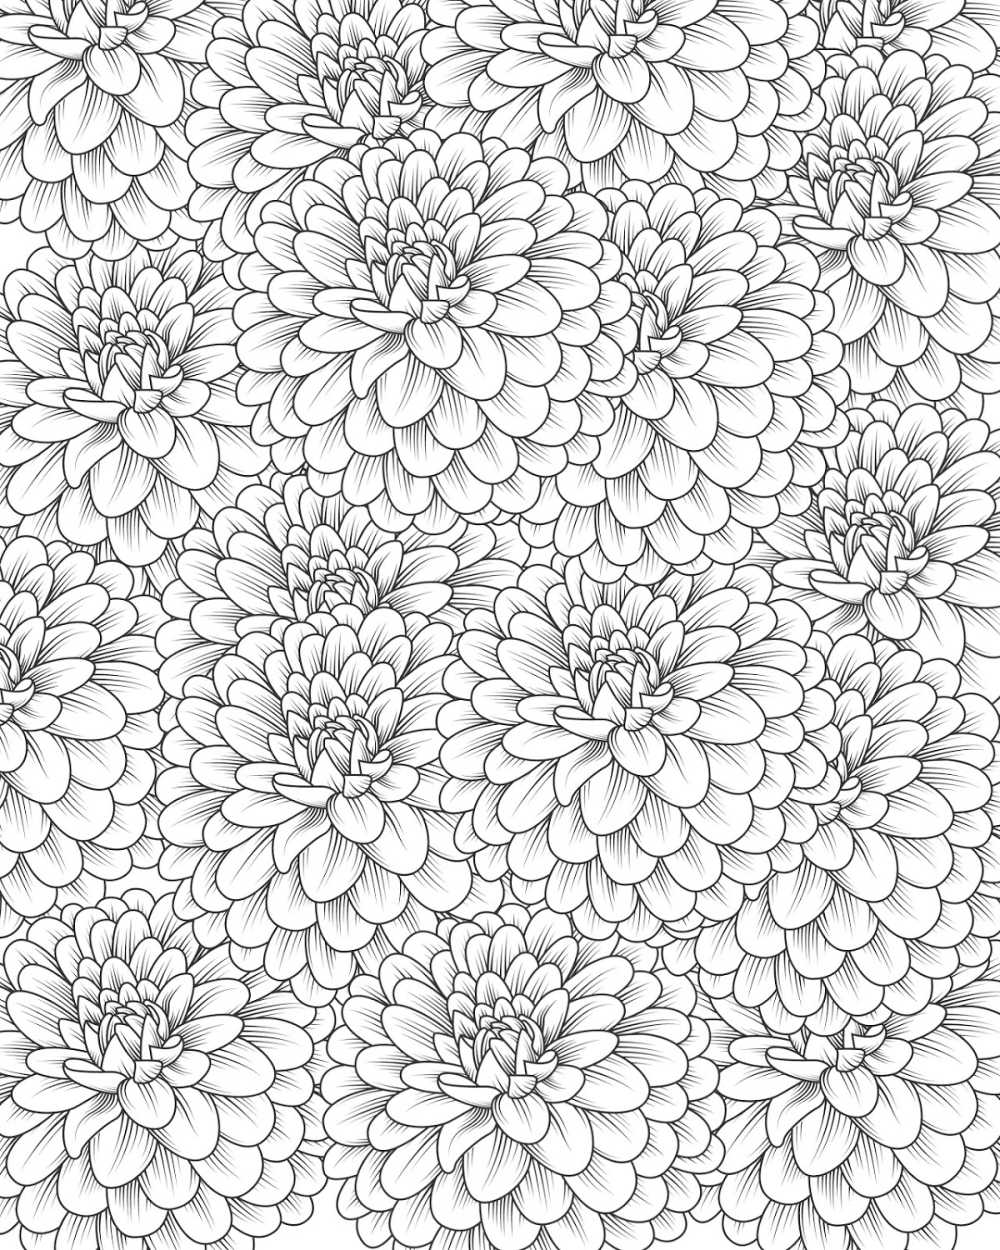 Chrysanthemum Coloring Page for Adults and Kids #Chrysanthemum #Mums #FreePrintable #FlowerColoringPage #FloralColoringPage